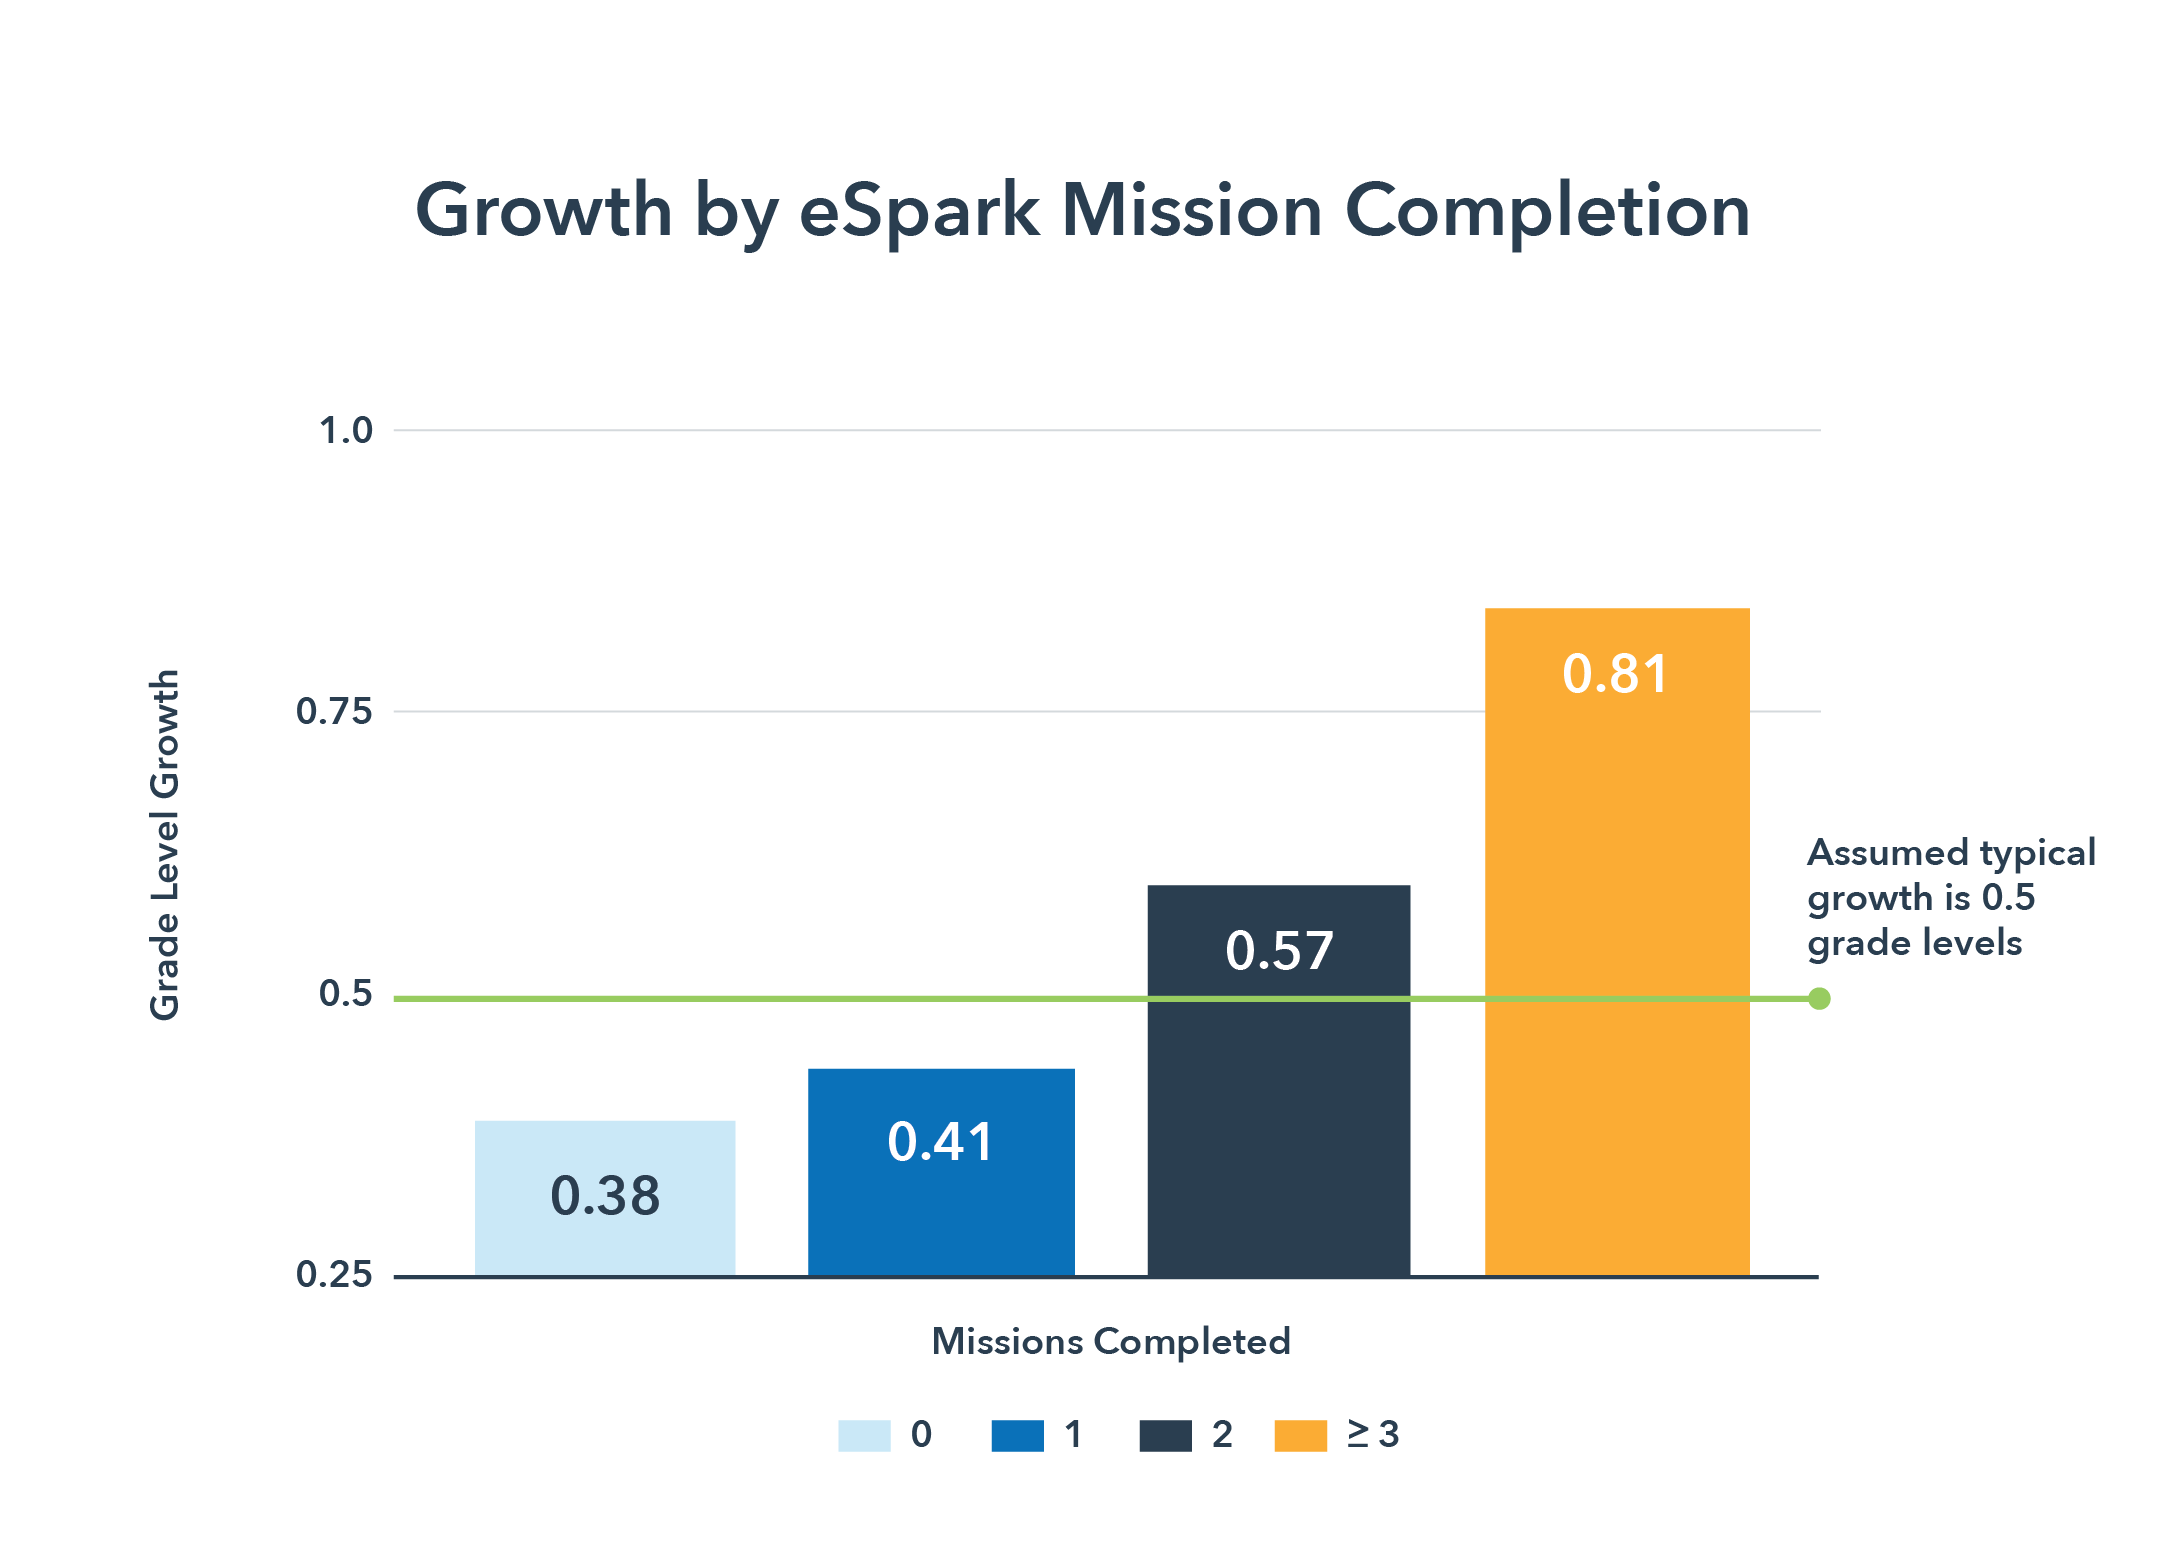 Growth by eSpark Mission Completion